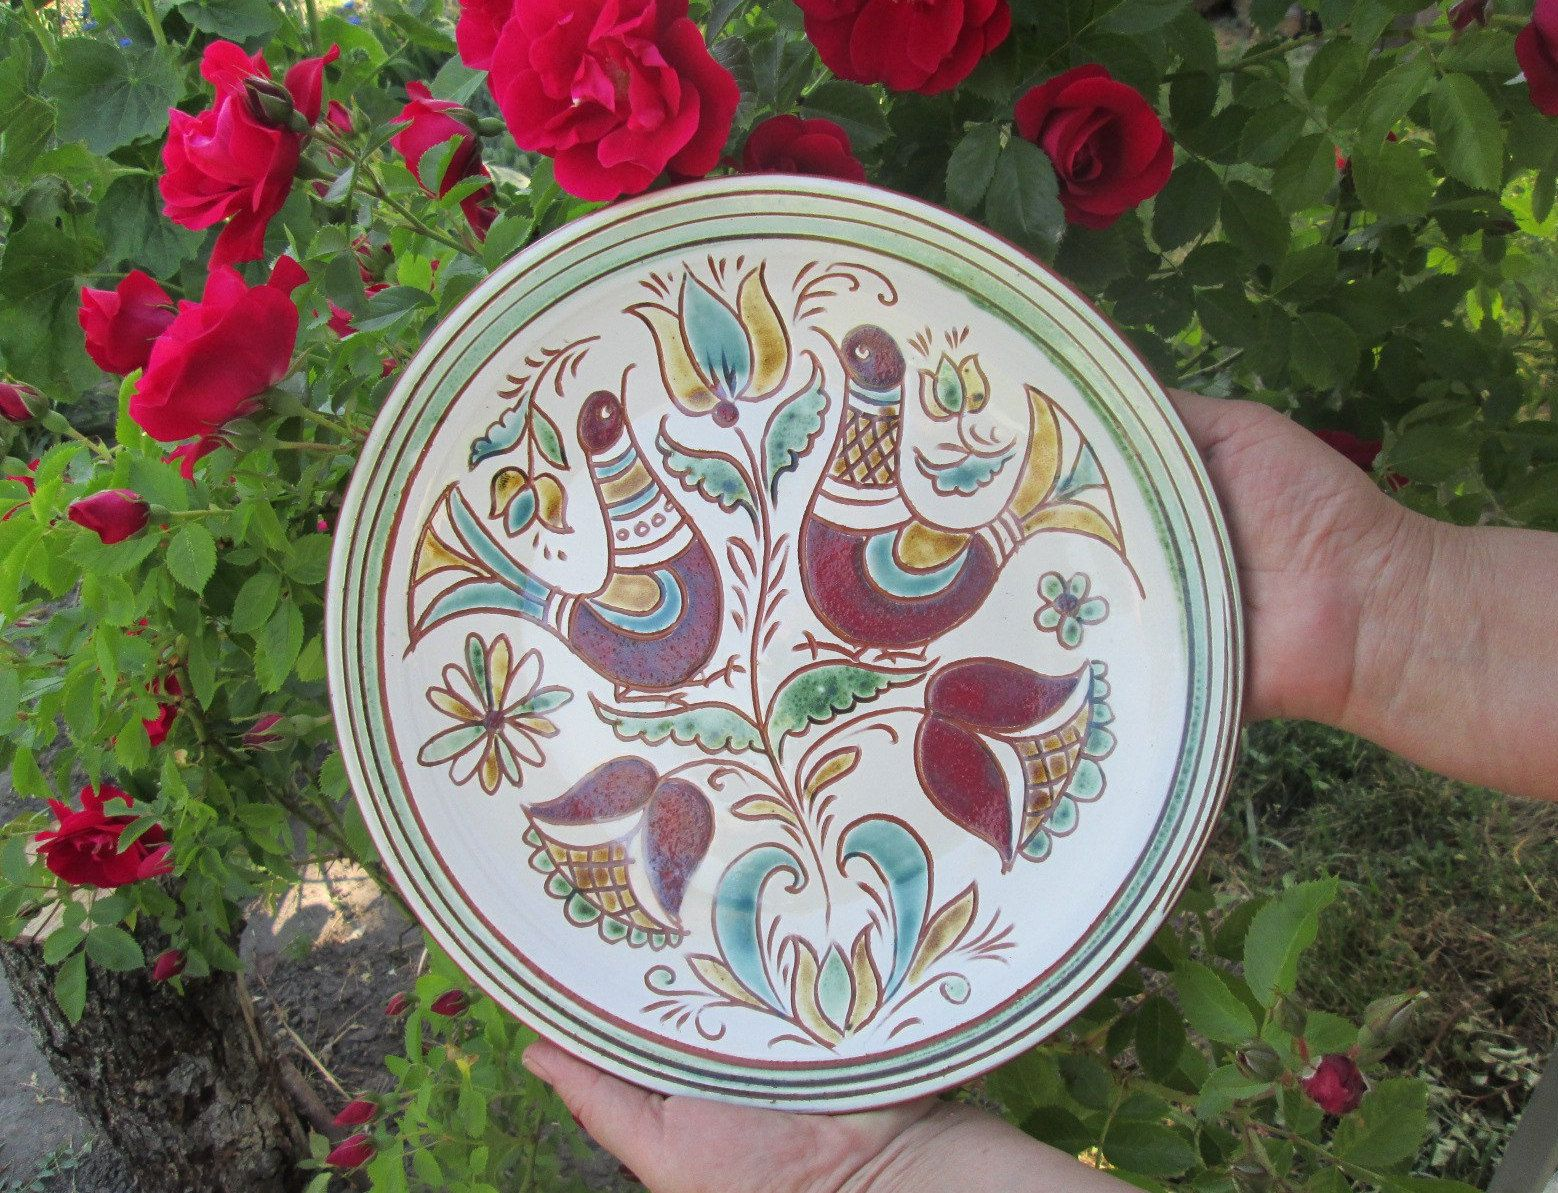 Large Decorative Ceramic Plates Ceramic Plate Pottery Wall Plate Kitchen Wall Decor Home Handmade